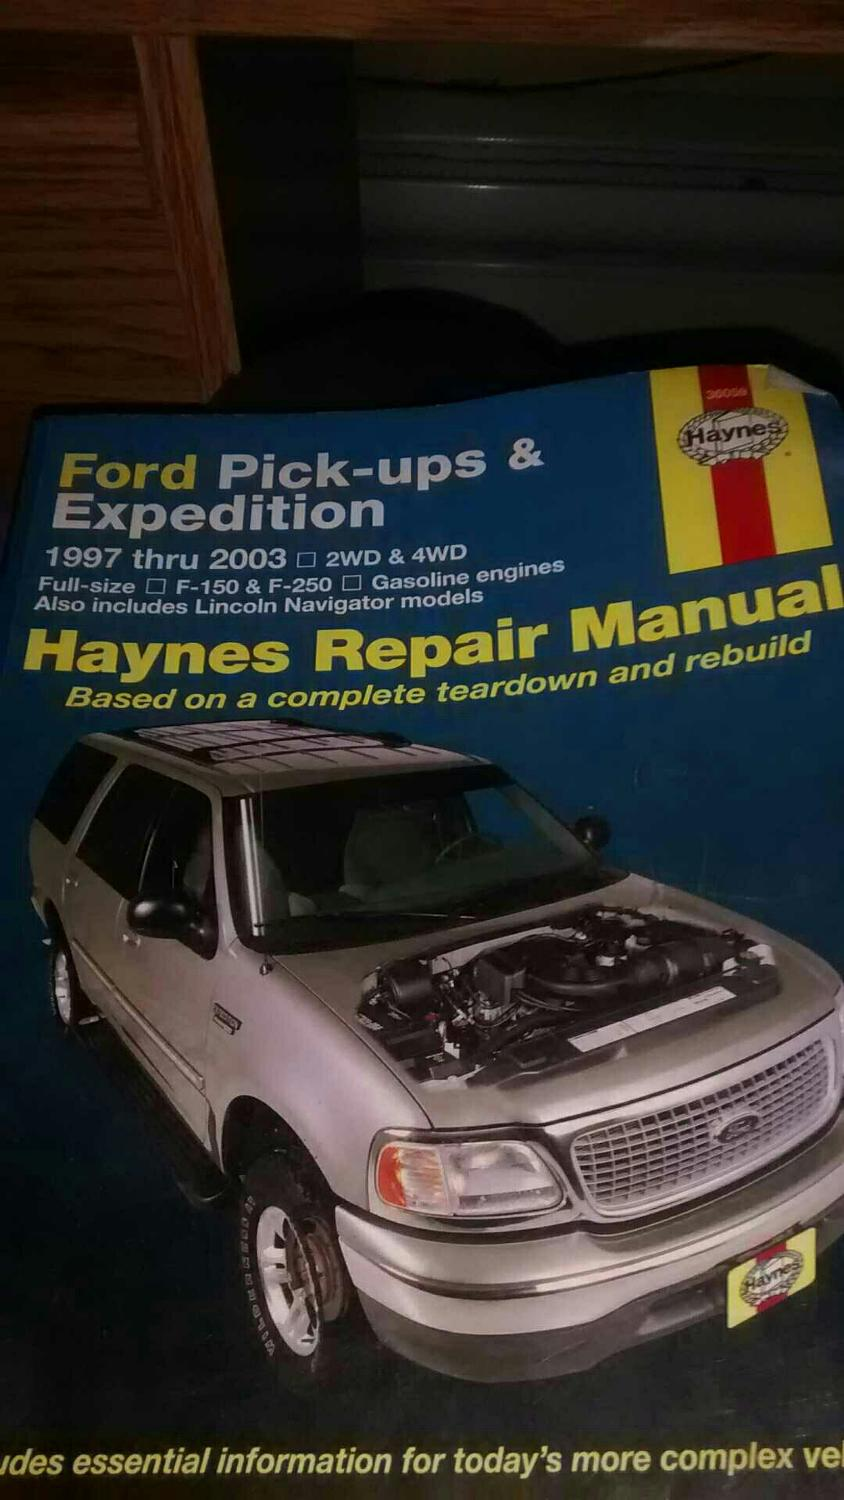 Best Haynes Repair Manual 1997-2003 Ford F150 F250 Expedition for sale in  Ladner, British Columbia for 2019